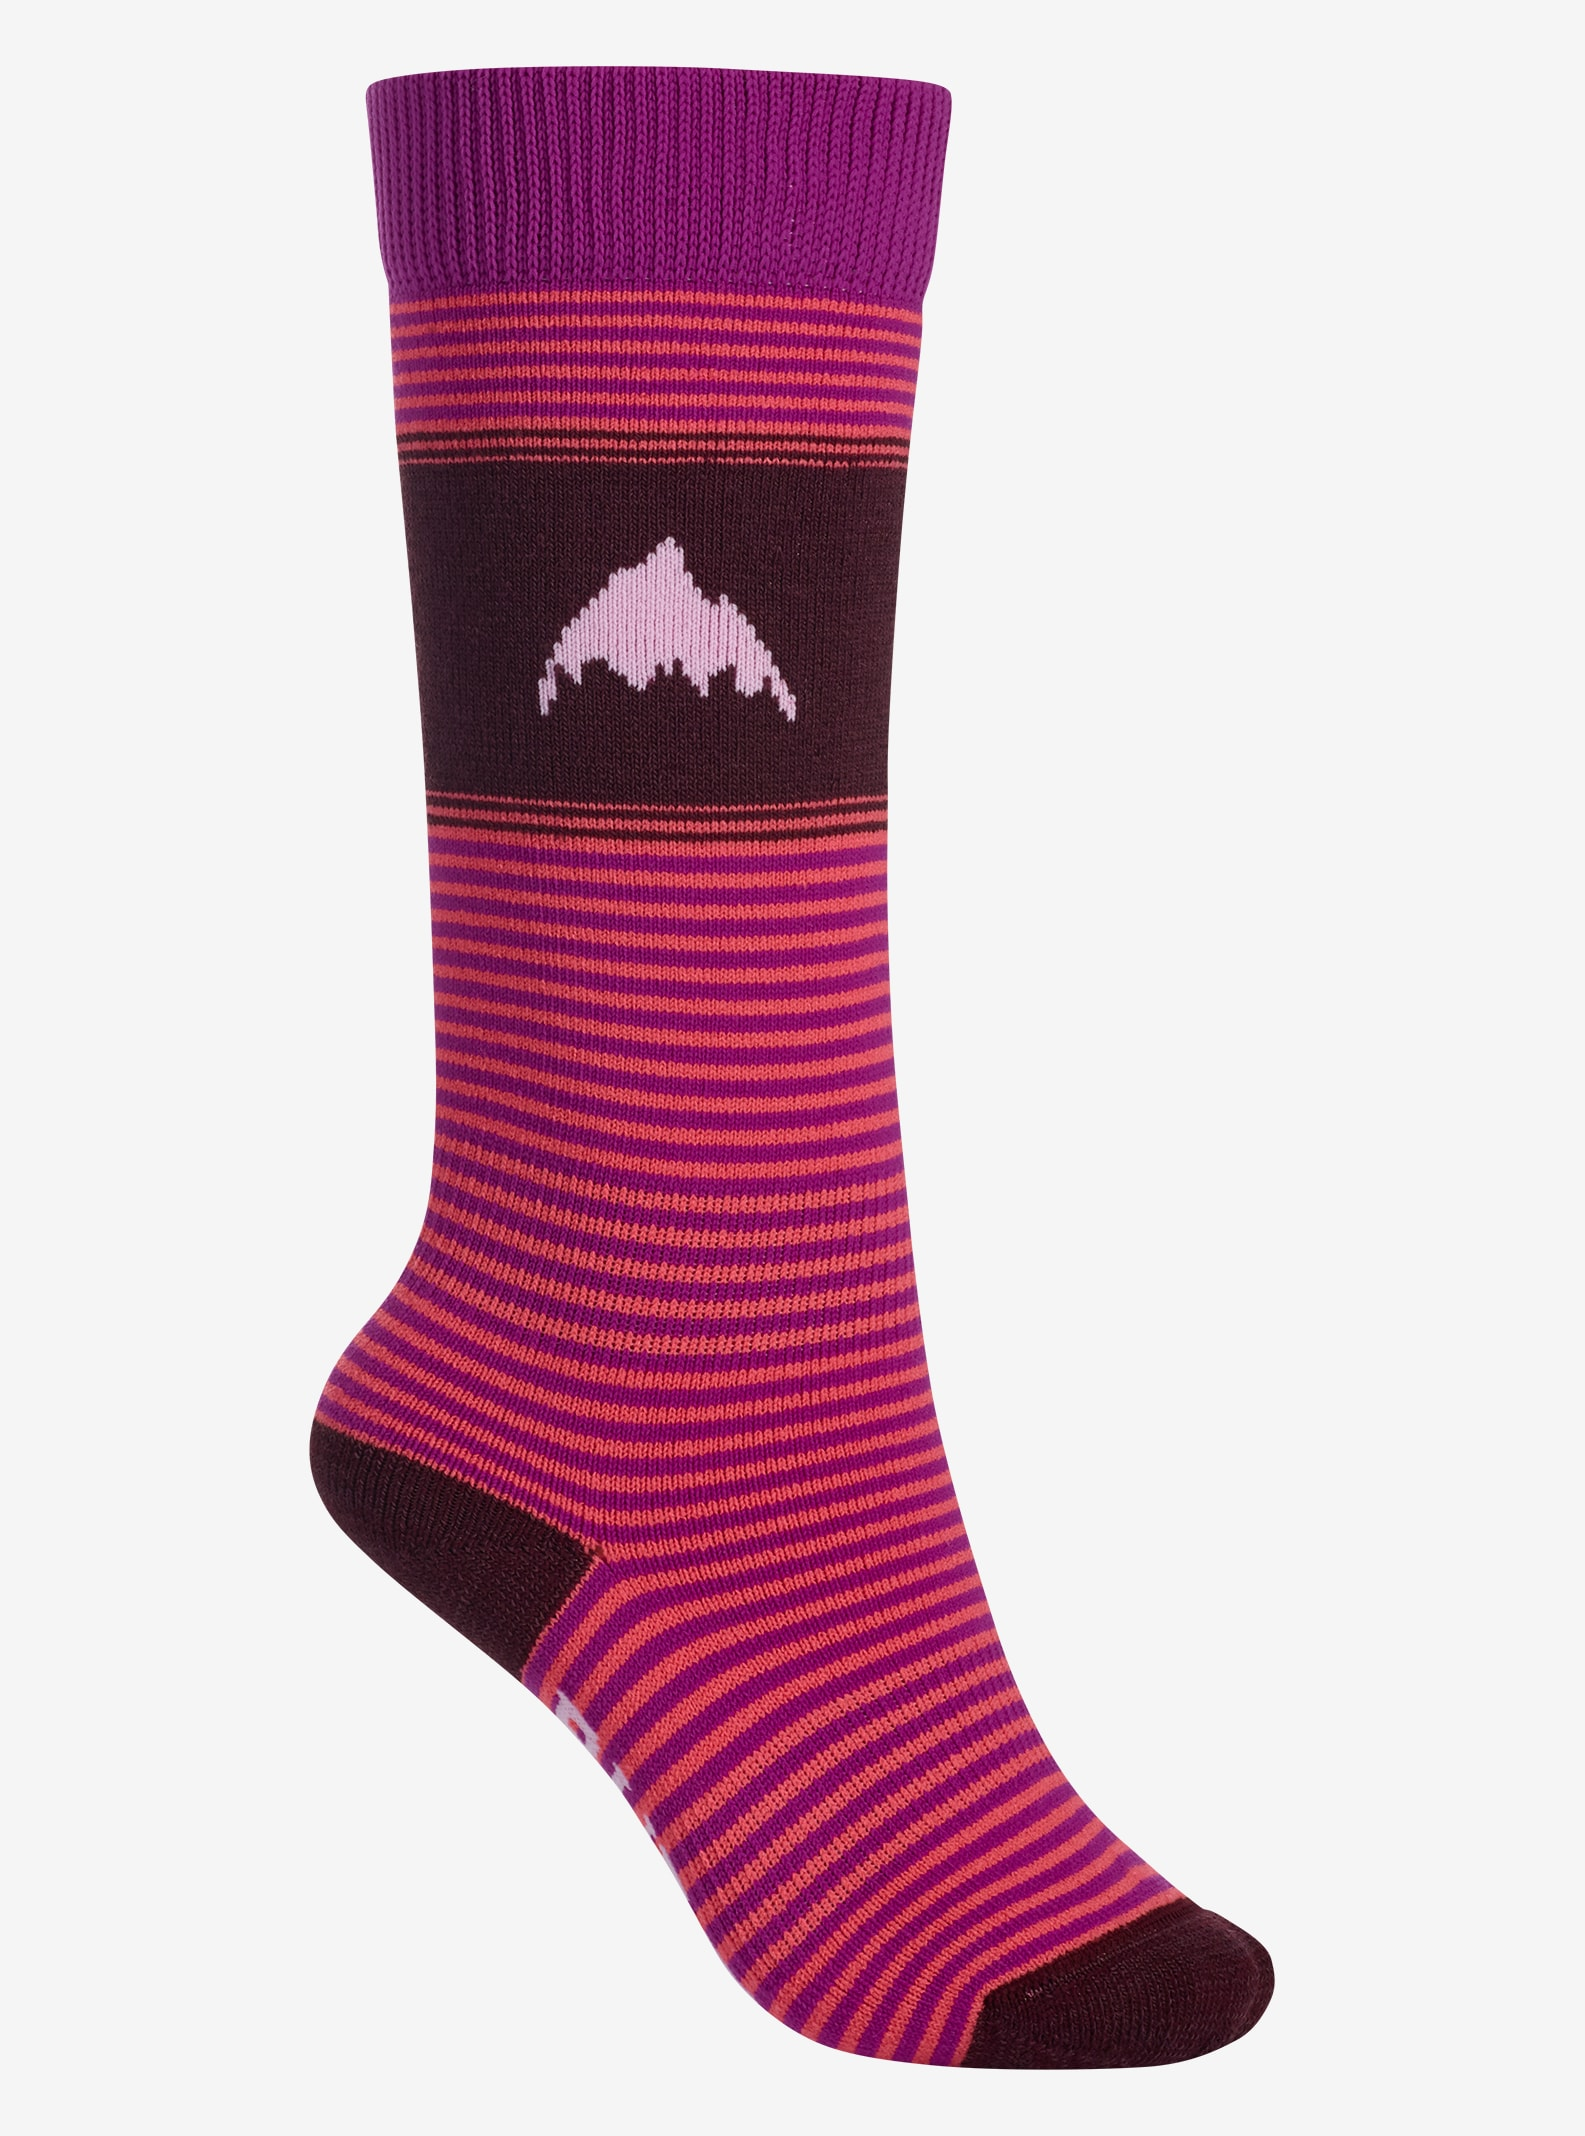 Girls' Burton Weekend Sock Two-Pack shown in Eggplant